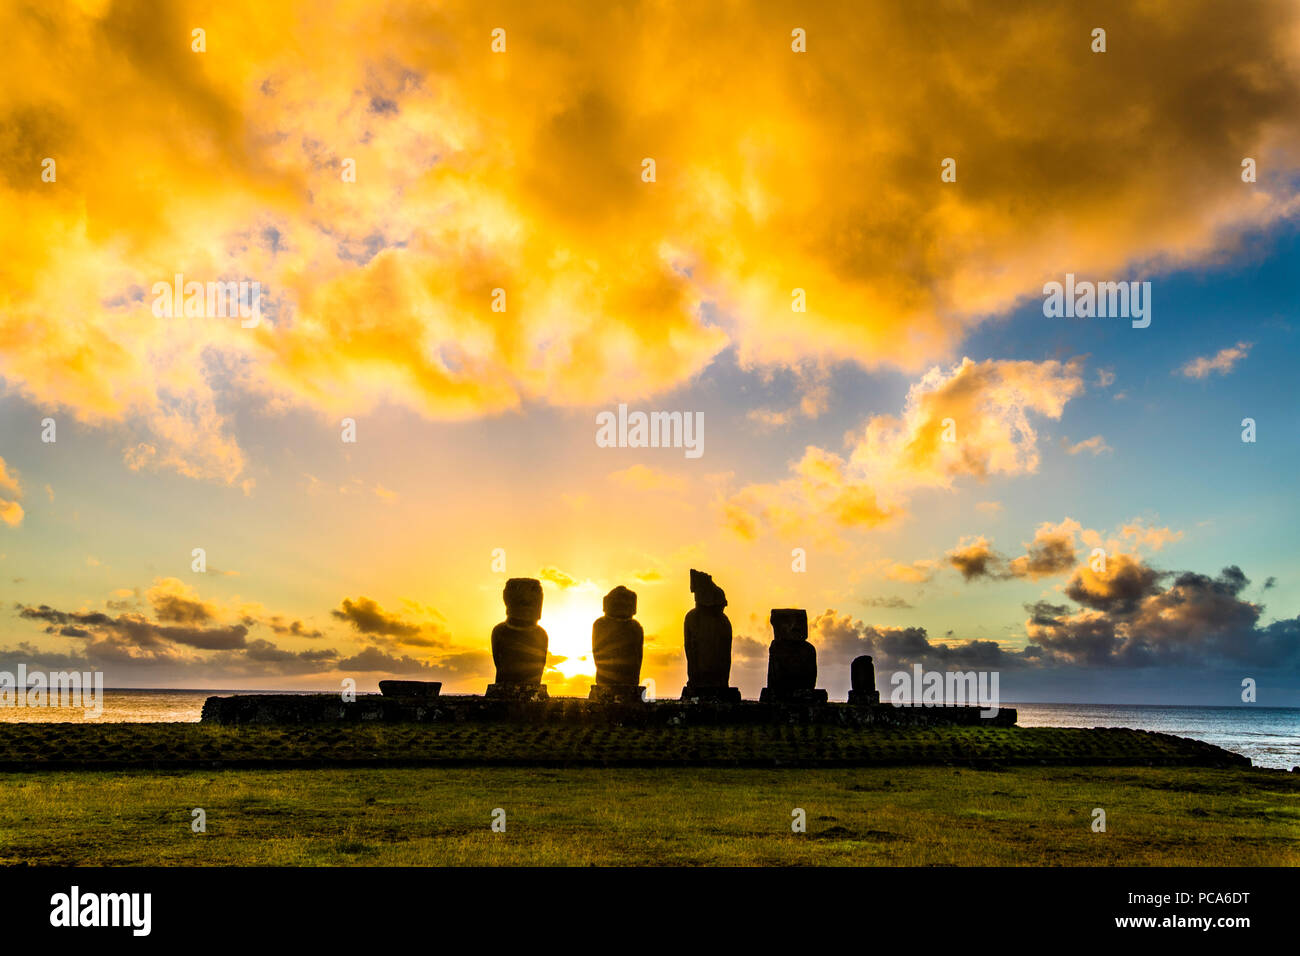 Ahu Tahai alone Moai at Hanga Roa, Easter Island. This is the only one with painted eyes like it was on the past. - Stock Image